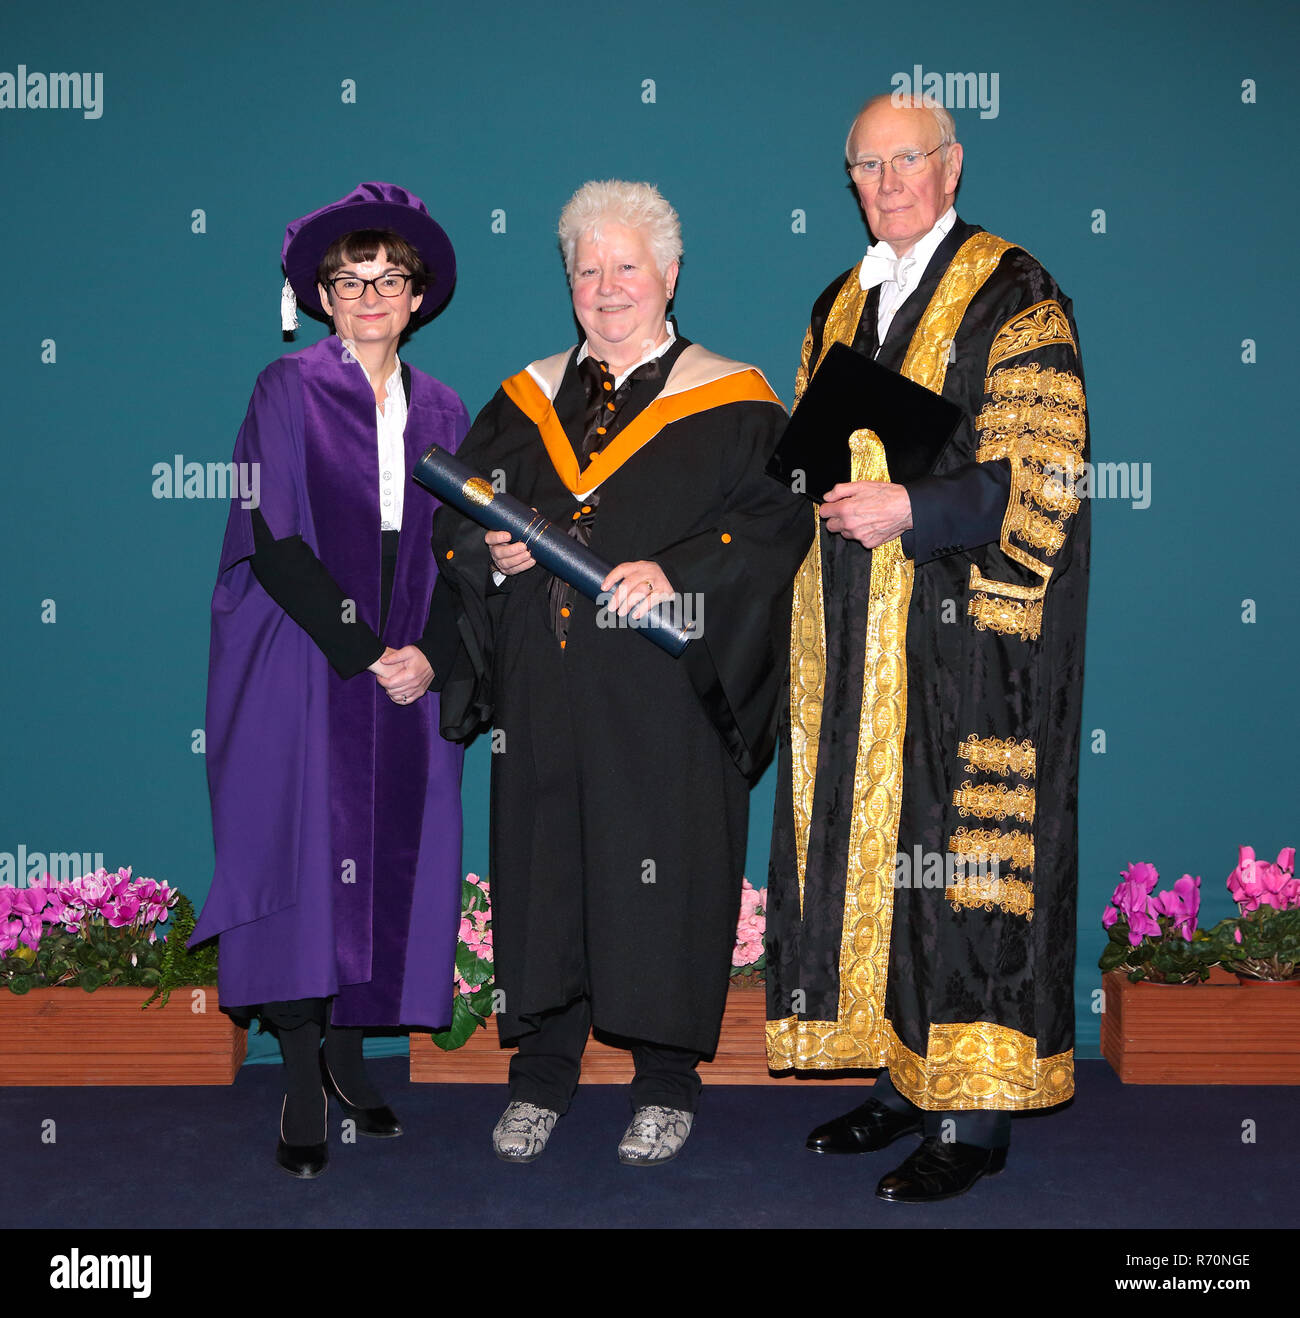 St Andrews, Fife, Scotland. 7th December 2018. St Andrews University Fife, Scotland, UK, Val McDermid recieves her Honorary degree from Professor Sally Mapstone the Principal and Vice-Chancellor standing alongside Sir Menzies Campbell. Credit: Derek Allan/Alamy Live News - Stock Image